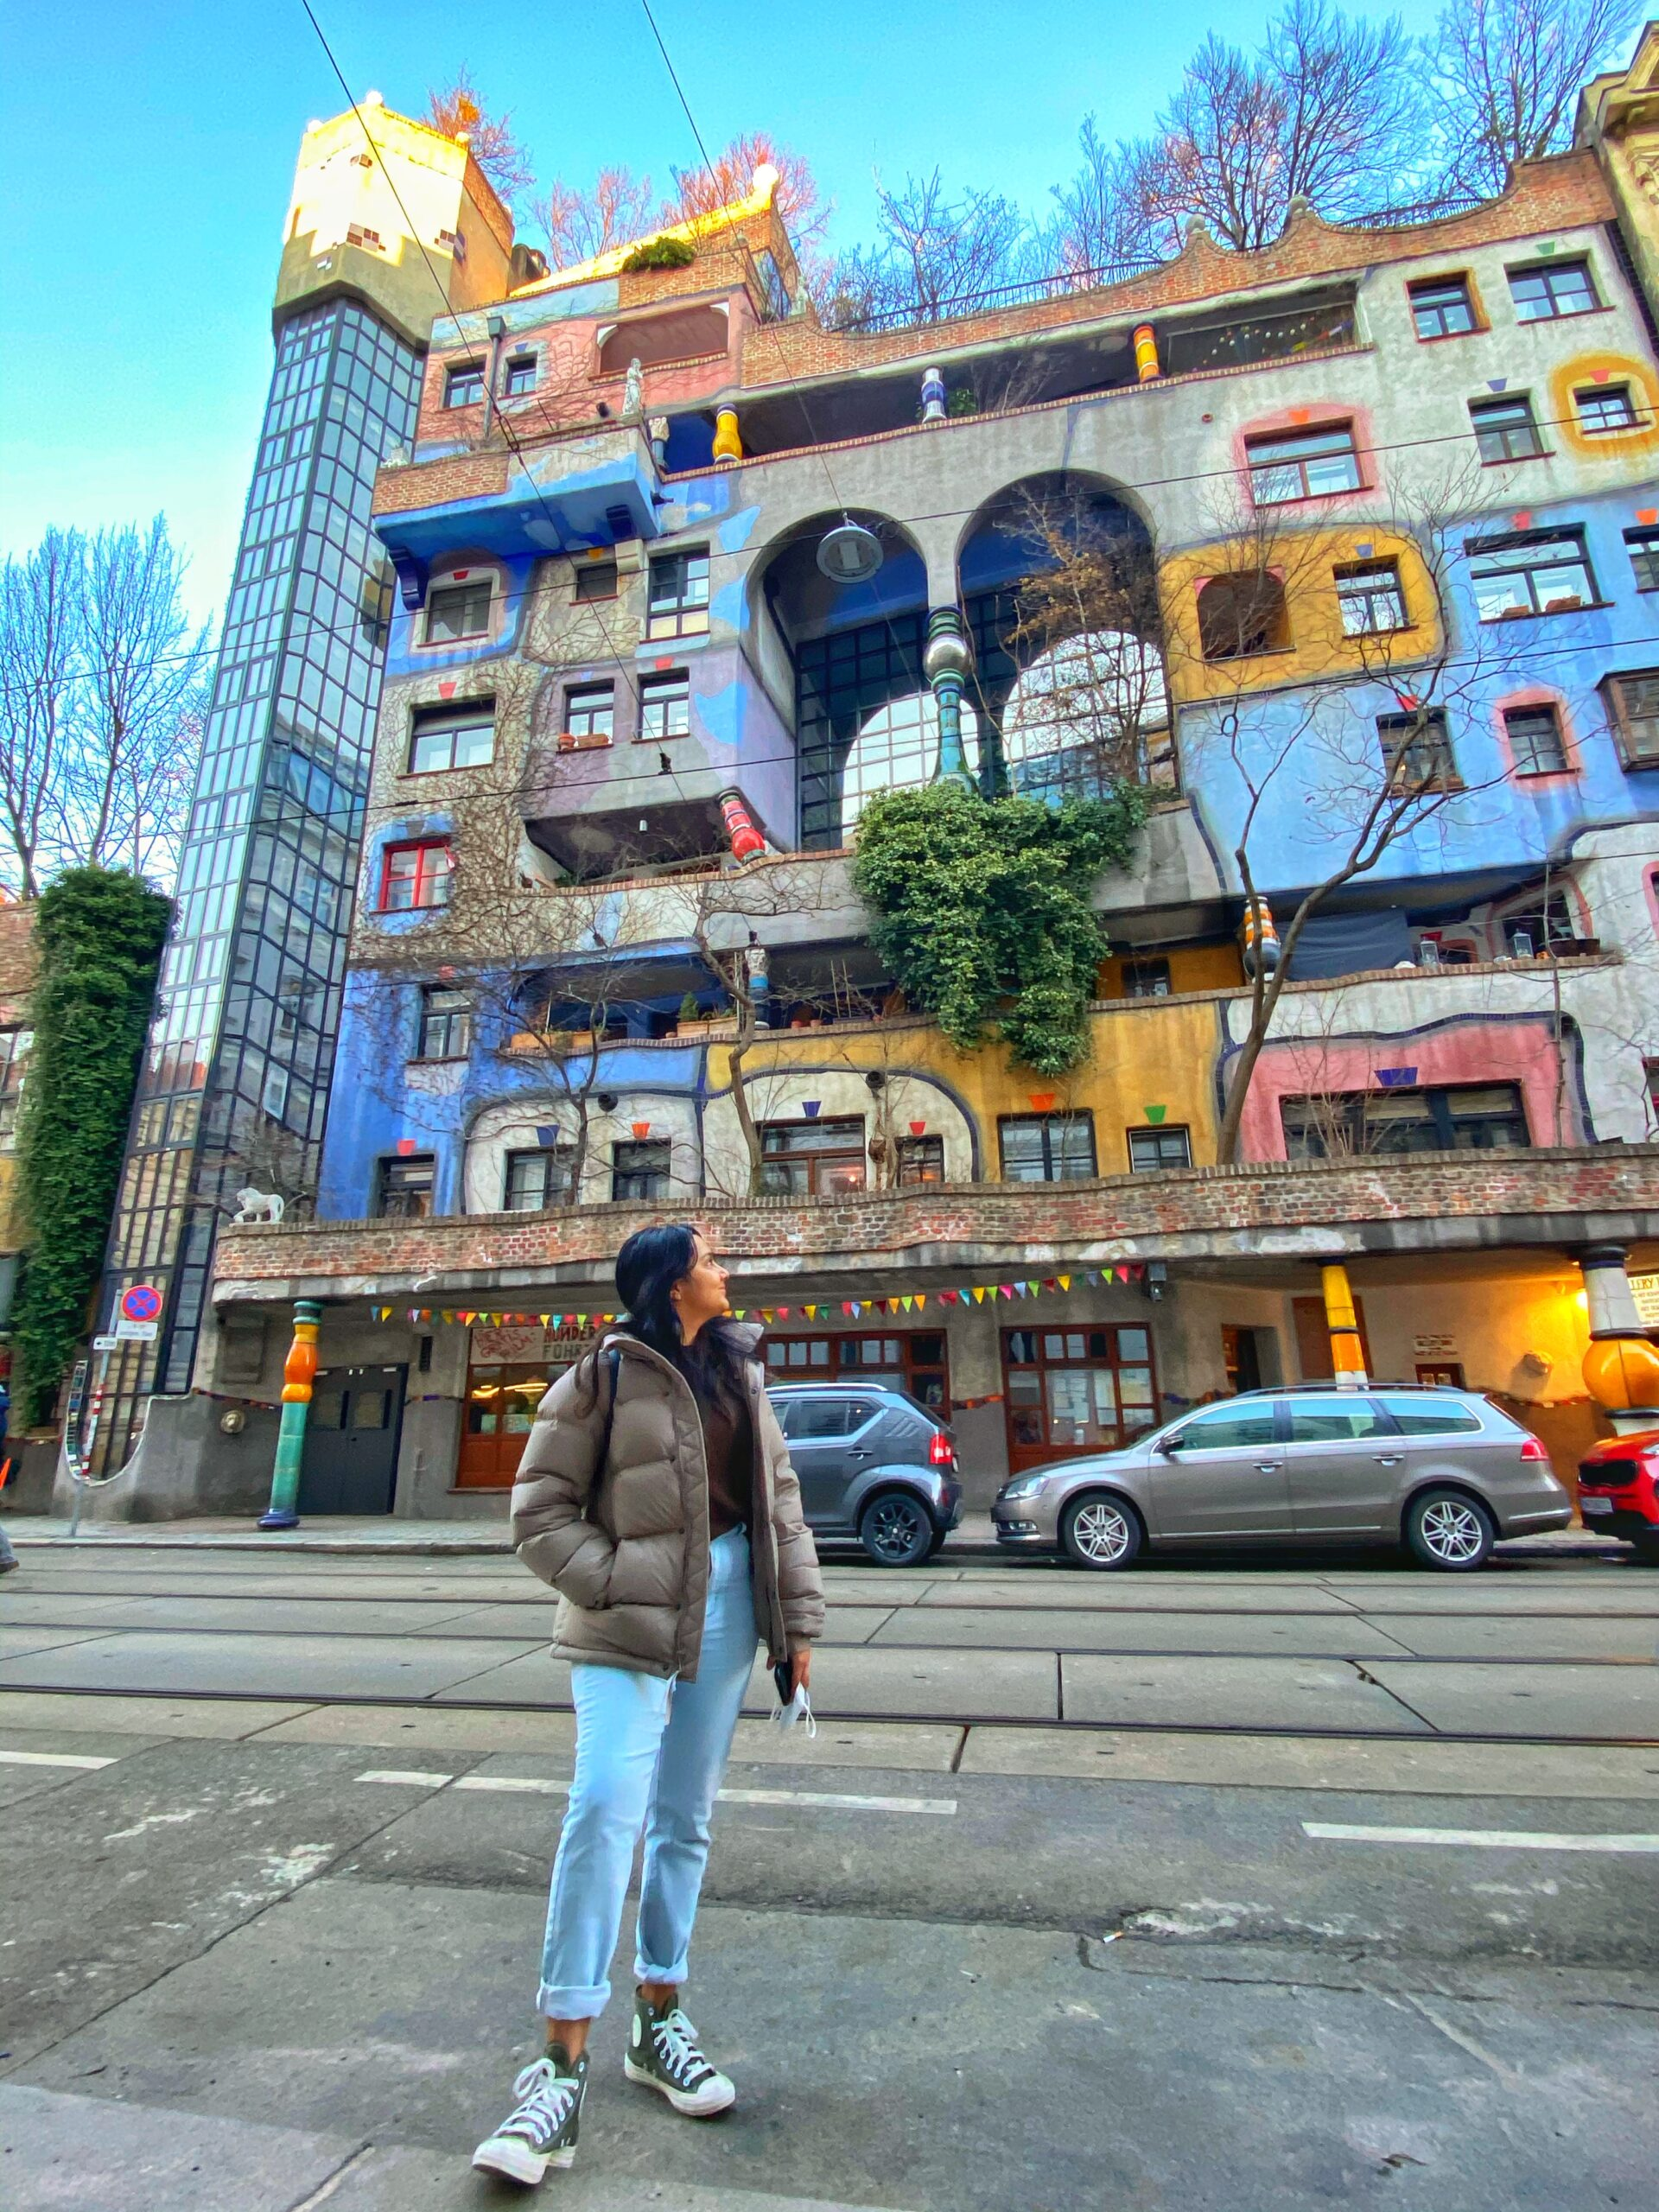 person stands in front of colourful buildings and street with cars during daytime